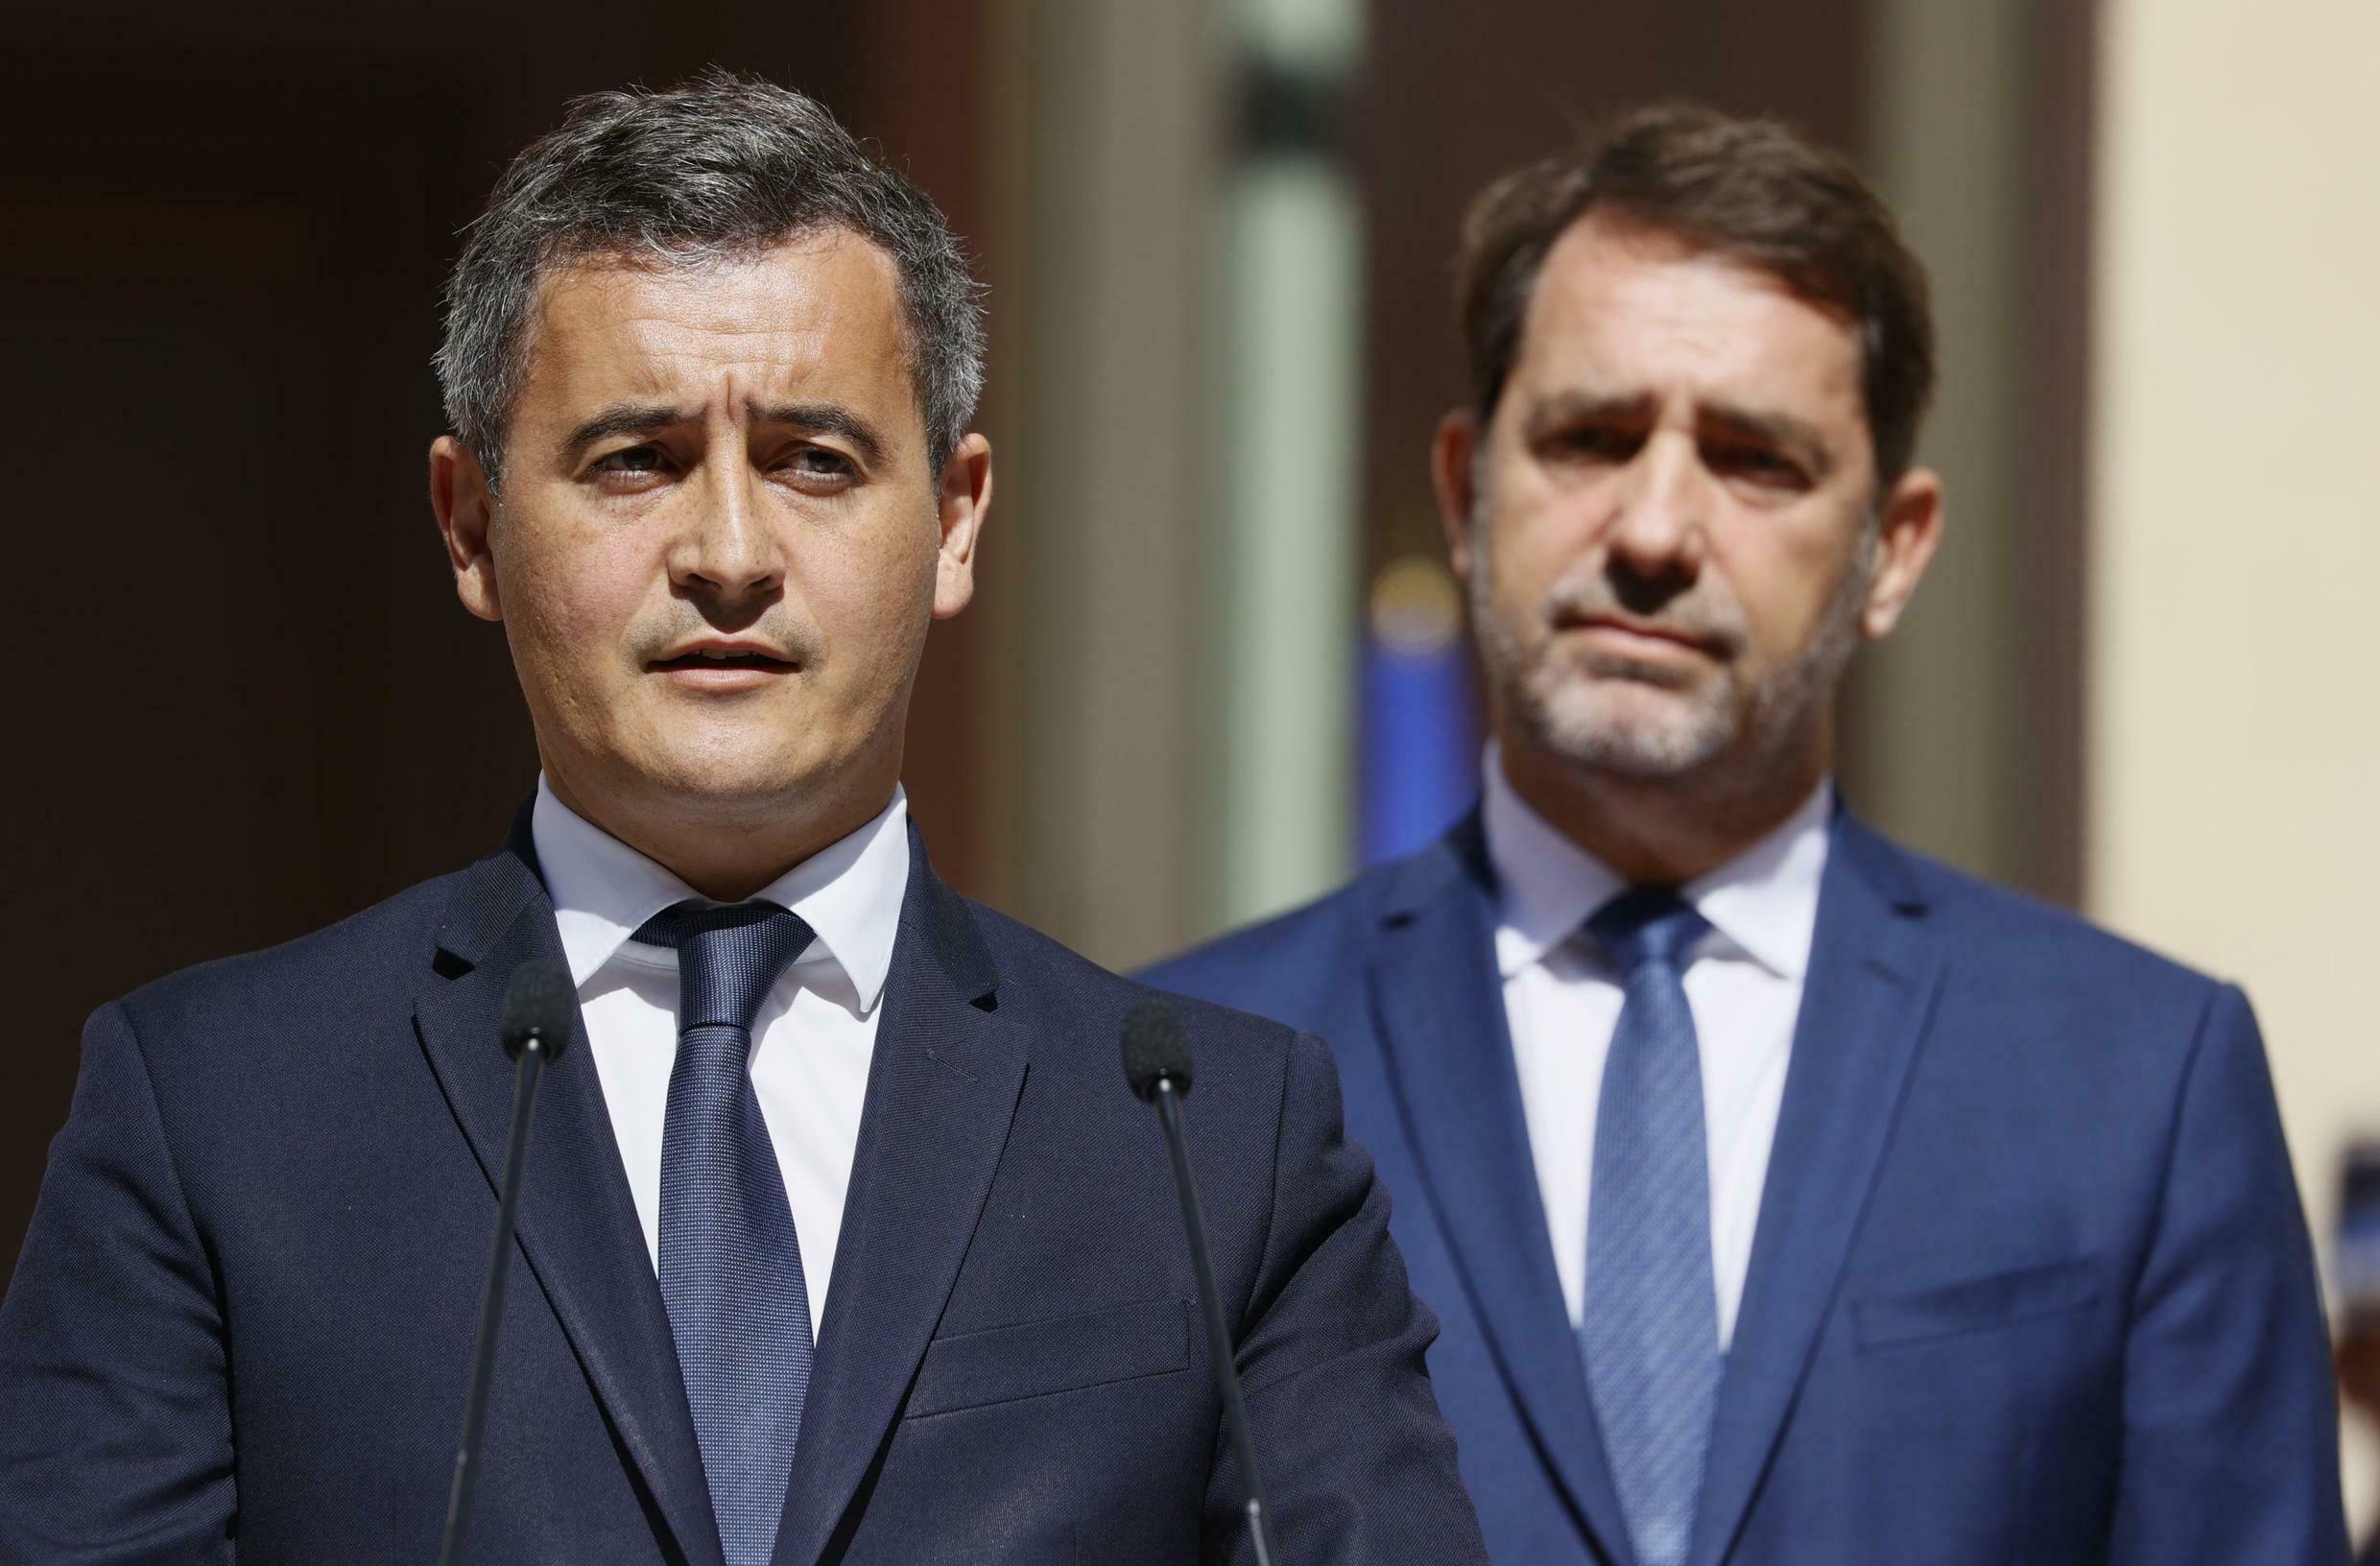 Gérald Darmanin (left) took over from Christophe Castaner as France's interior minister in July.